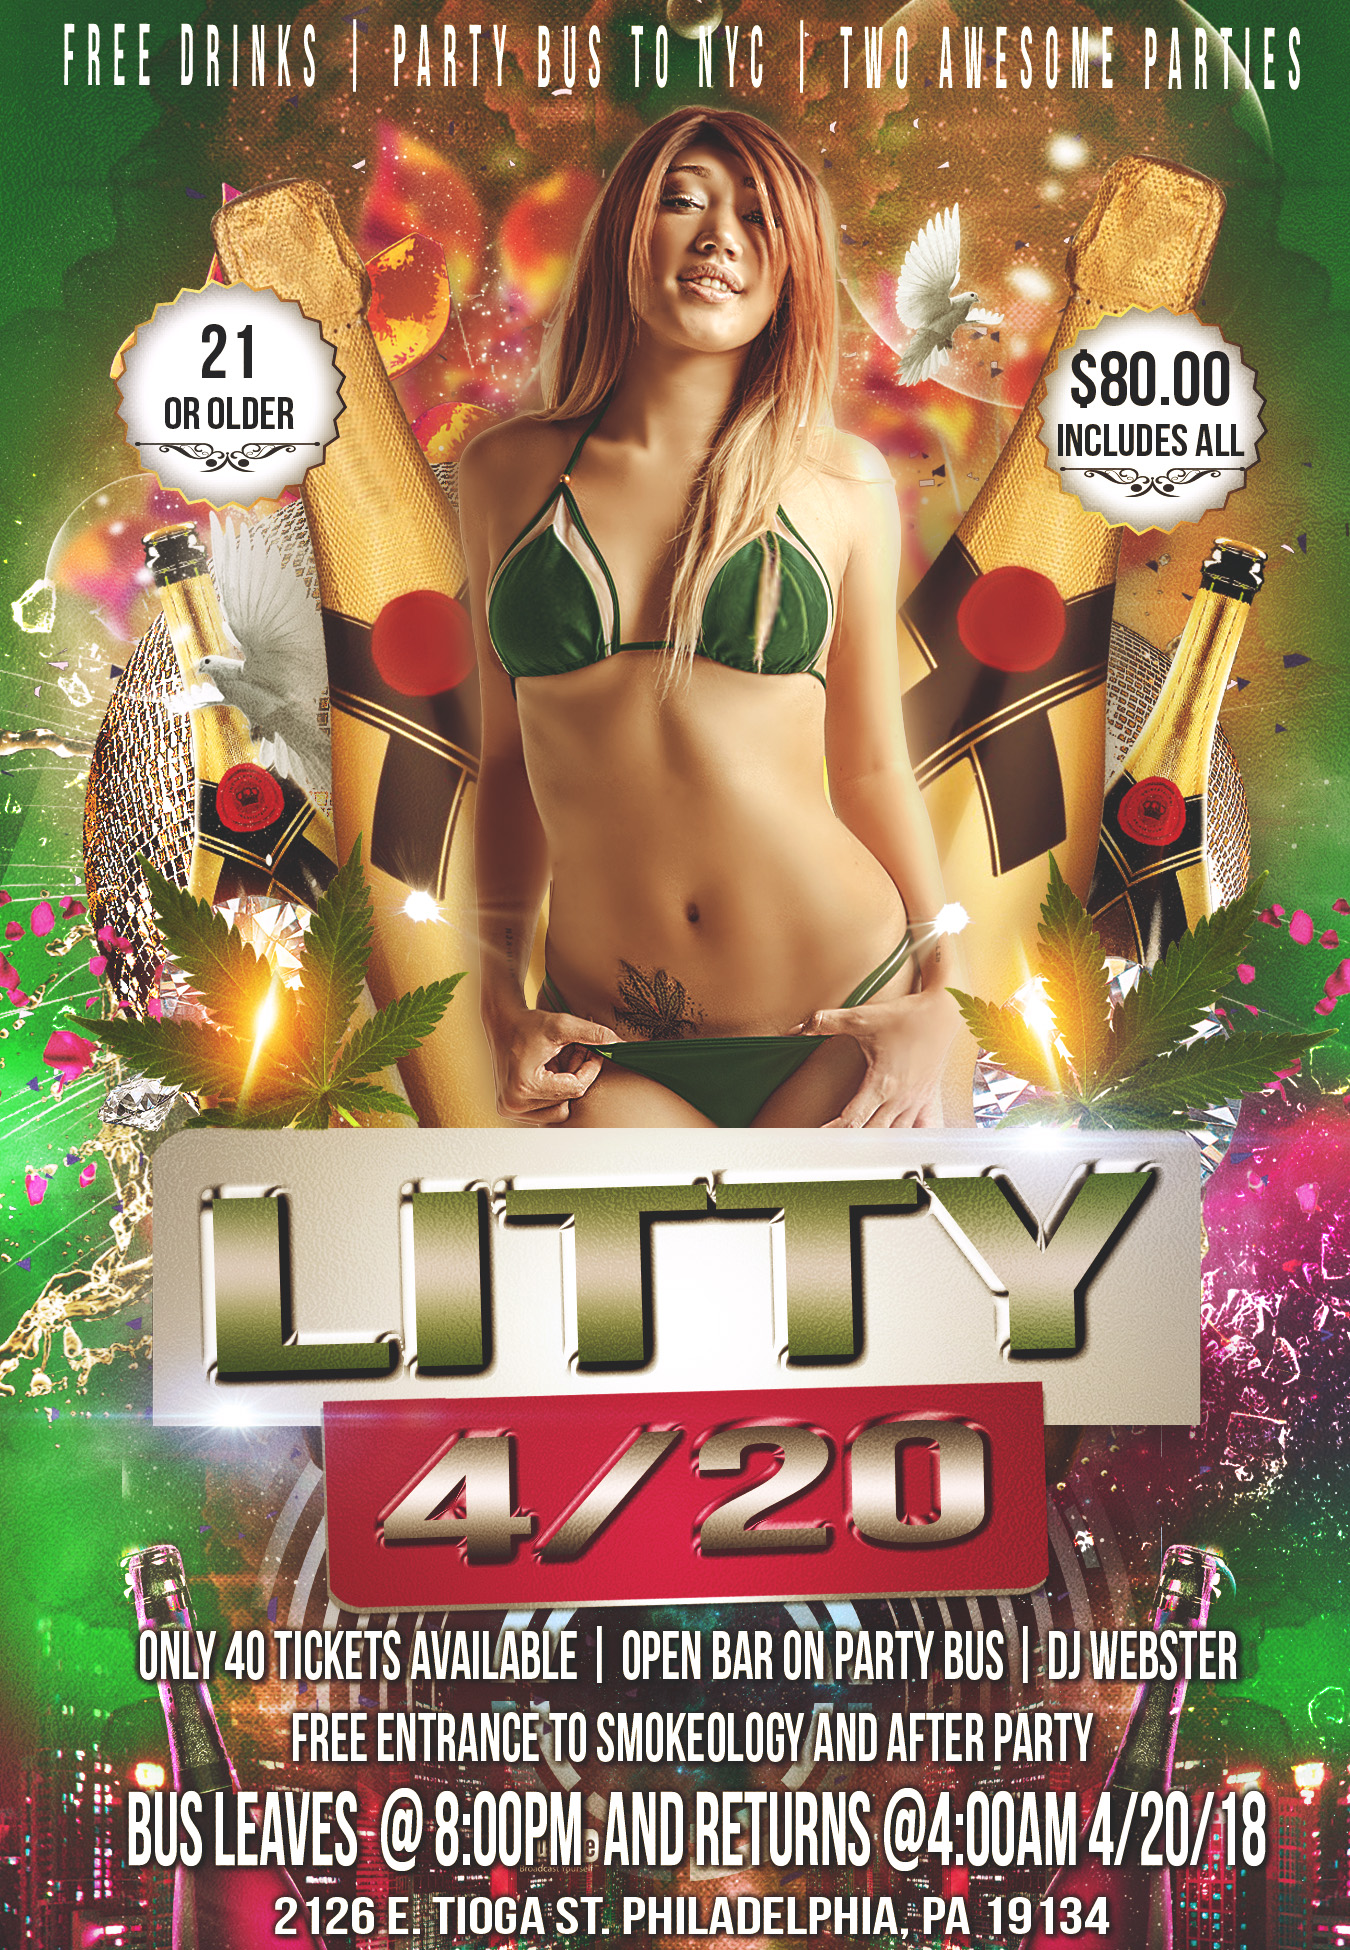 420 Bus Party Flyer